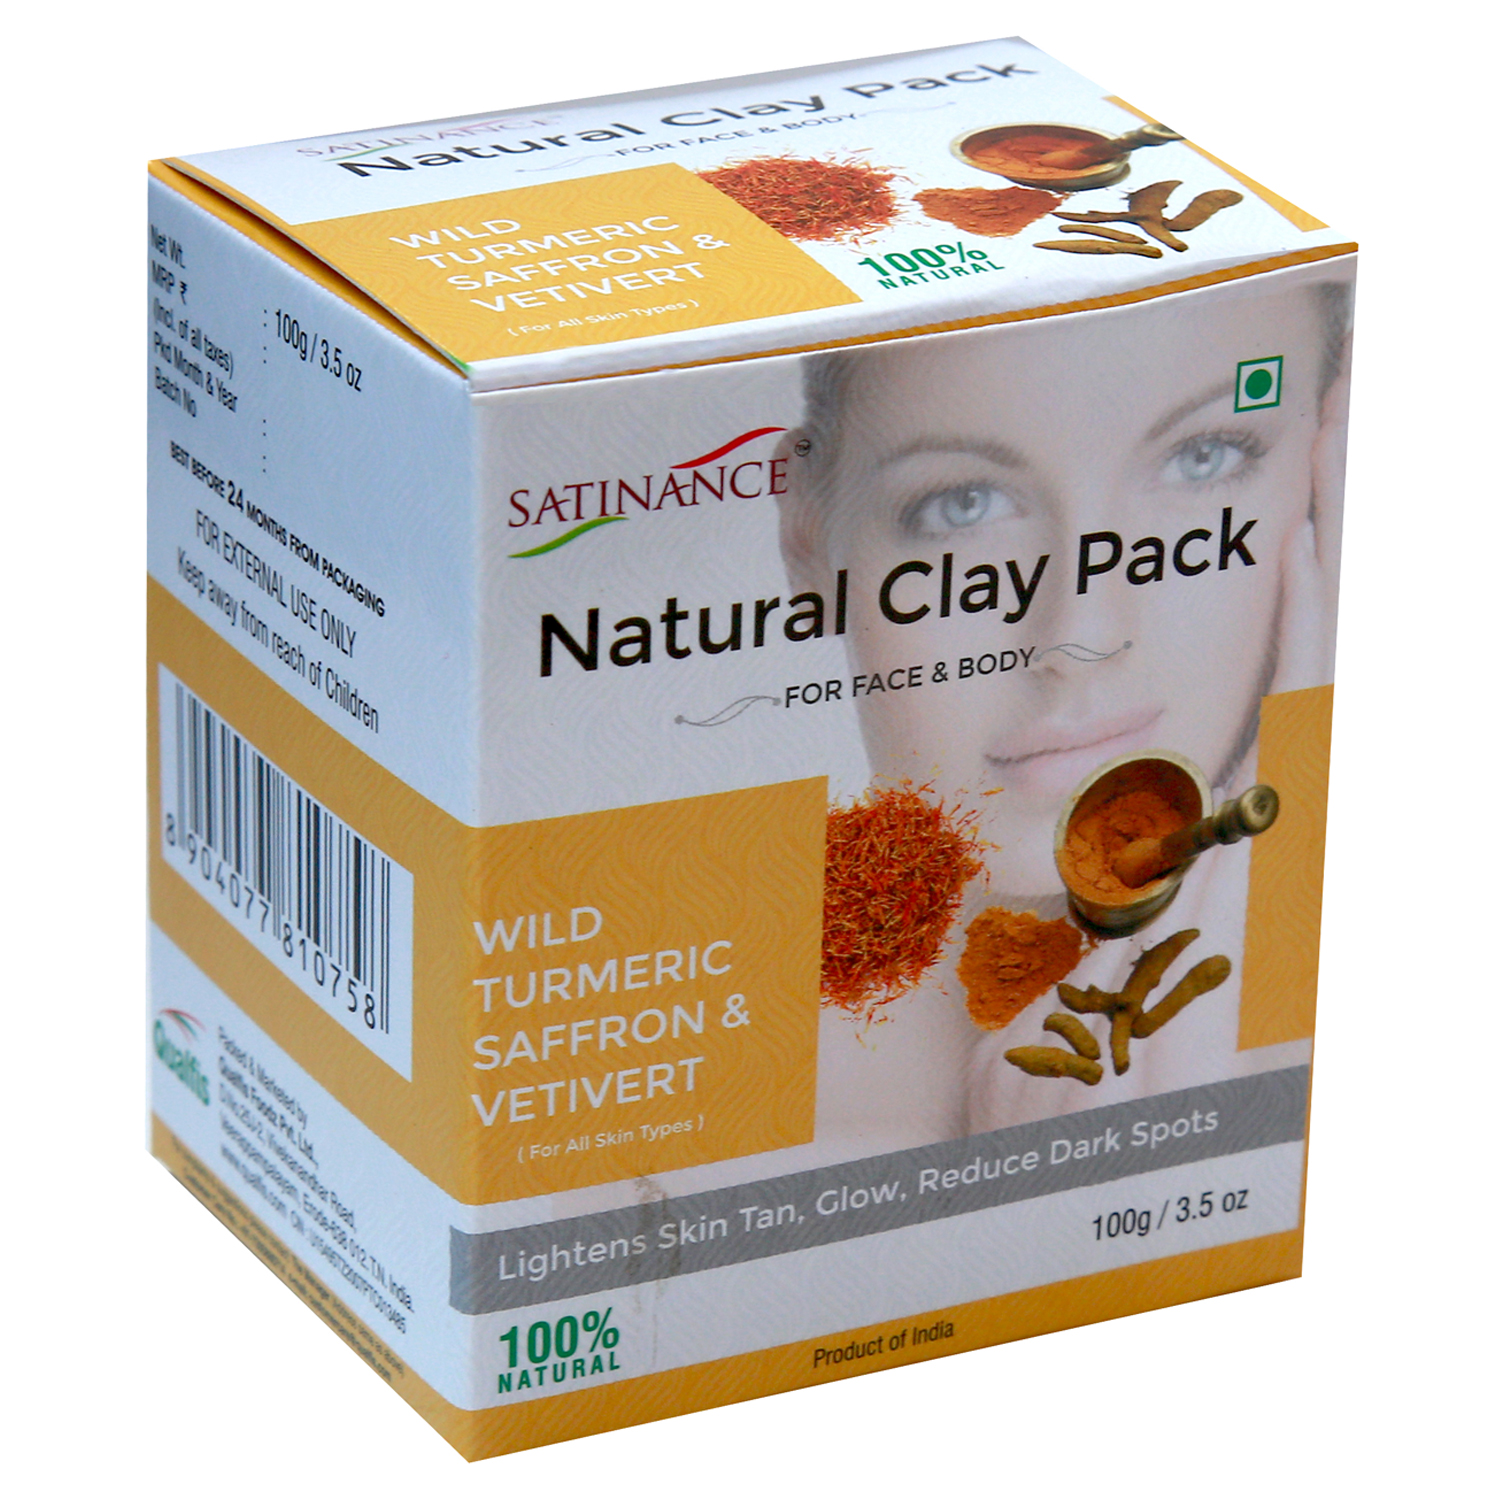 Natural Clay Pack Wild Turmeric, Saffron & Vetivert – 100g ( Lightens Skin Tone, Glow, Reduce Dark Spots)